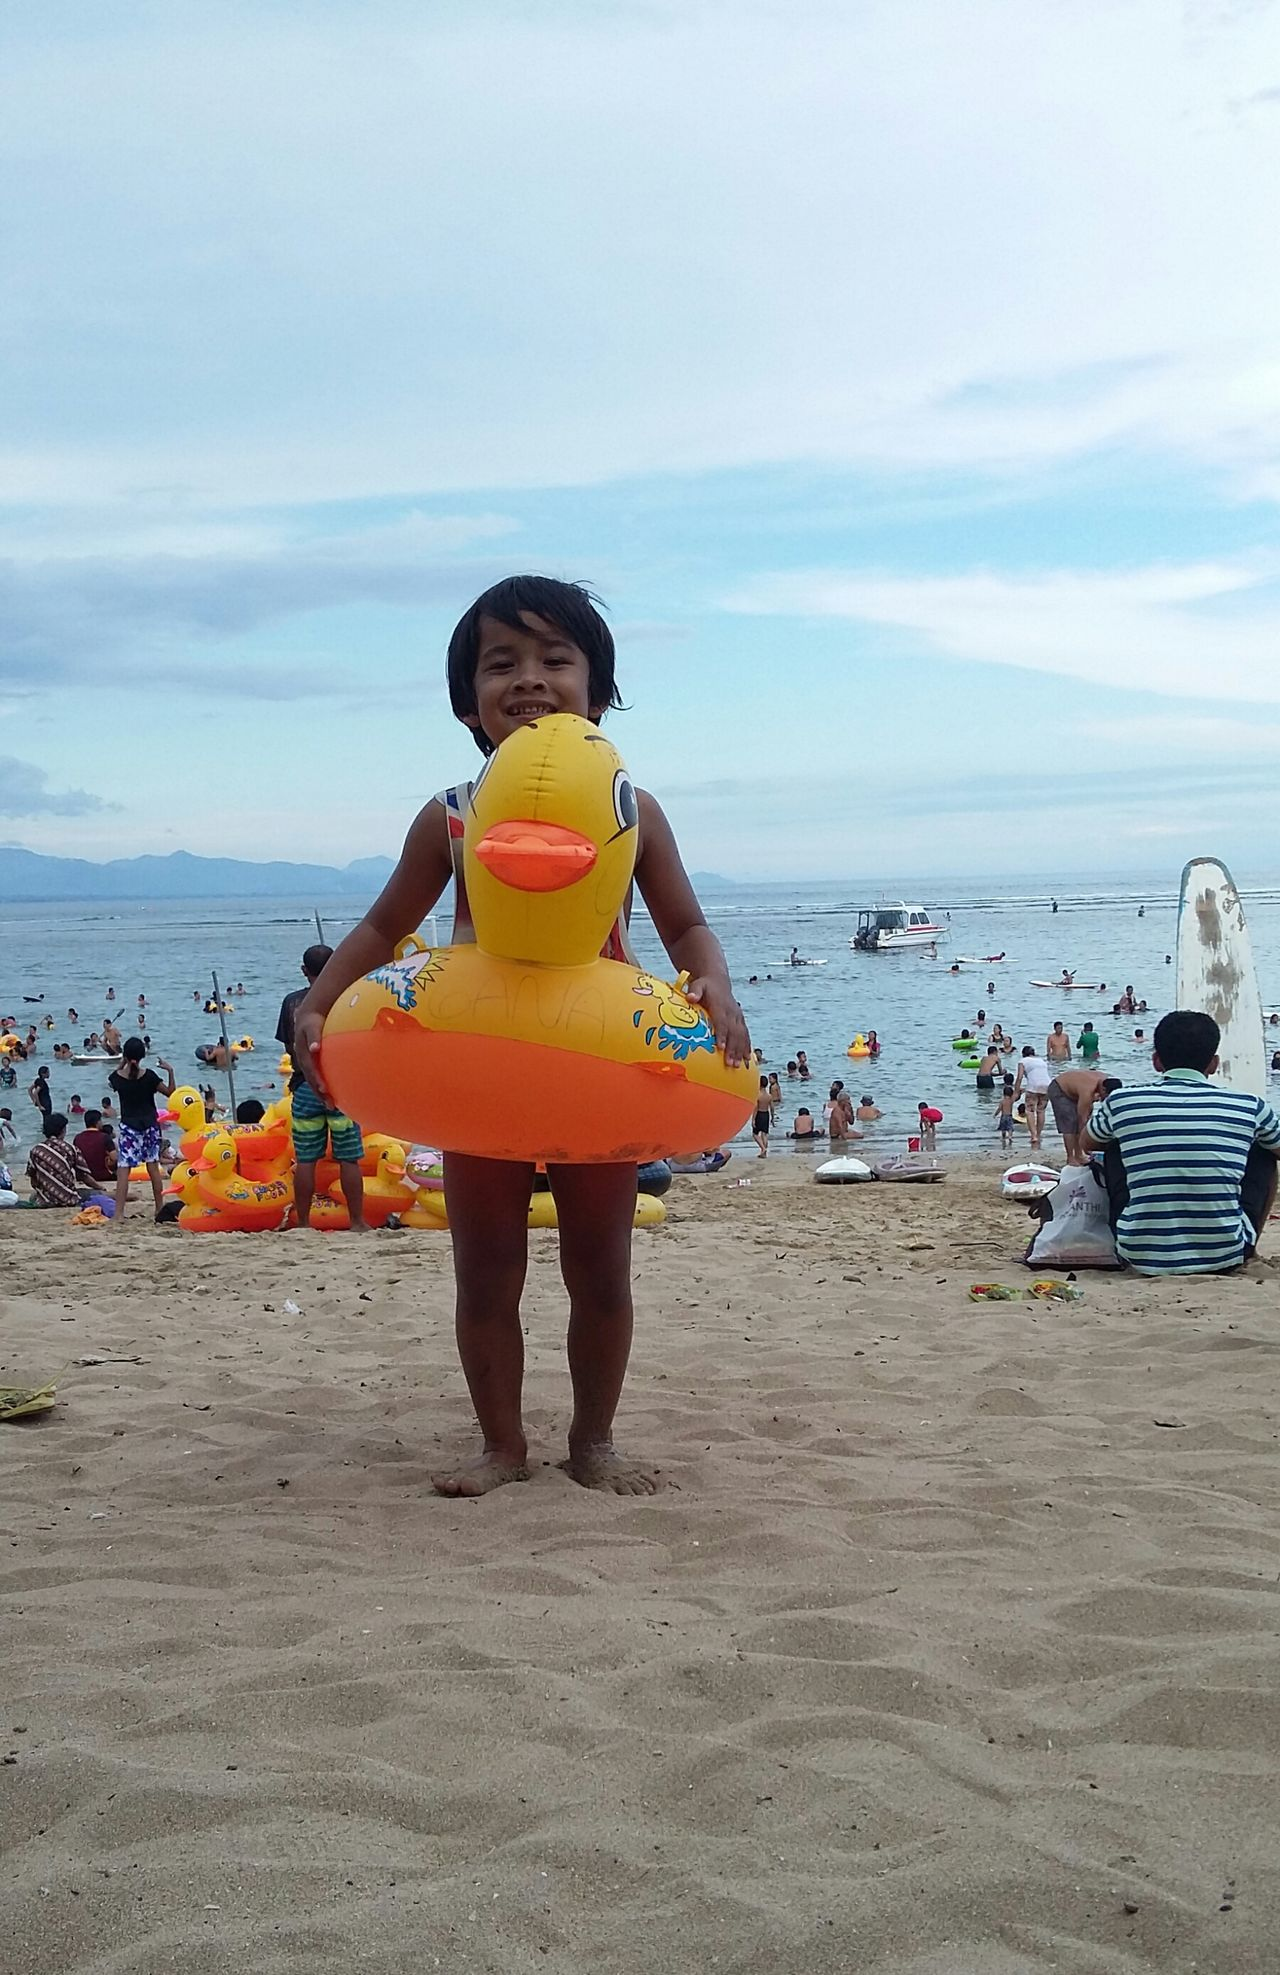 Have a good time kids! Playtime Beachtime Famillytime Sundaymorning